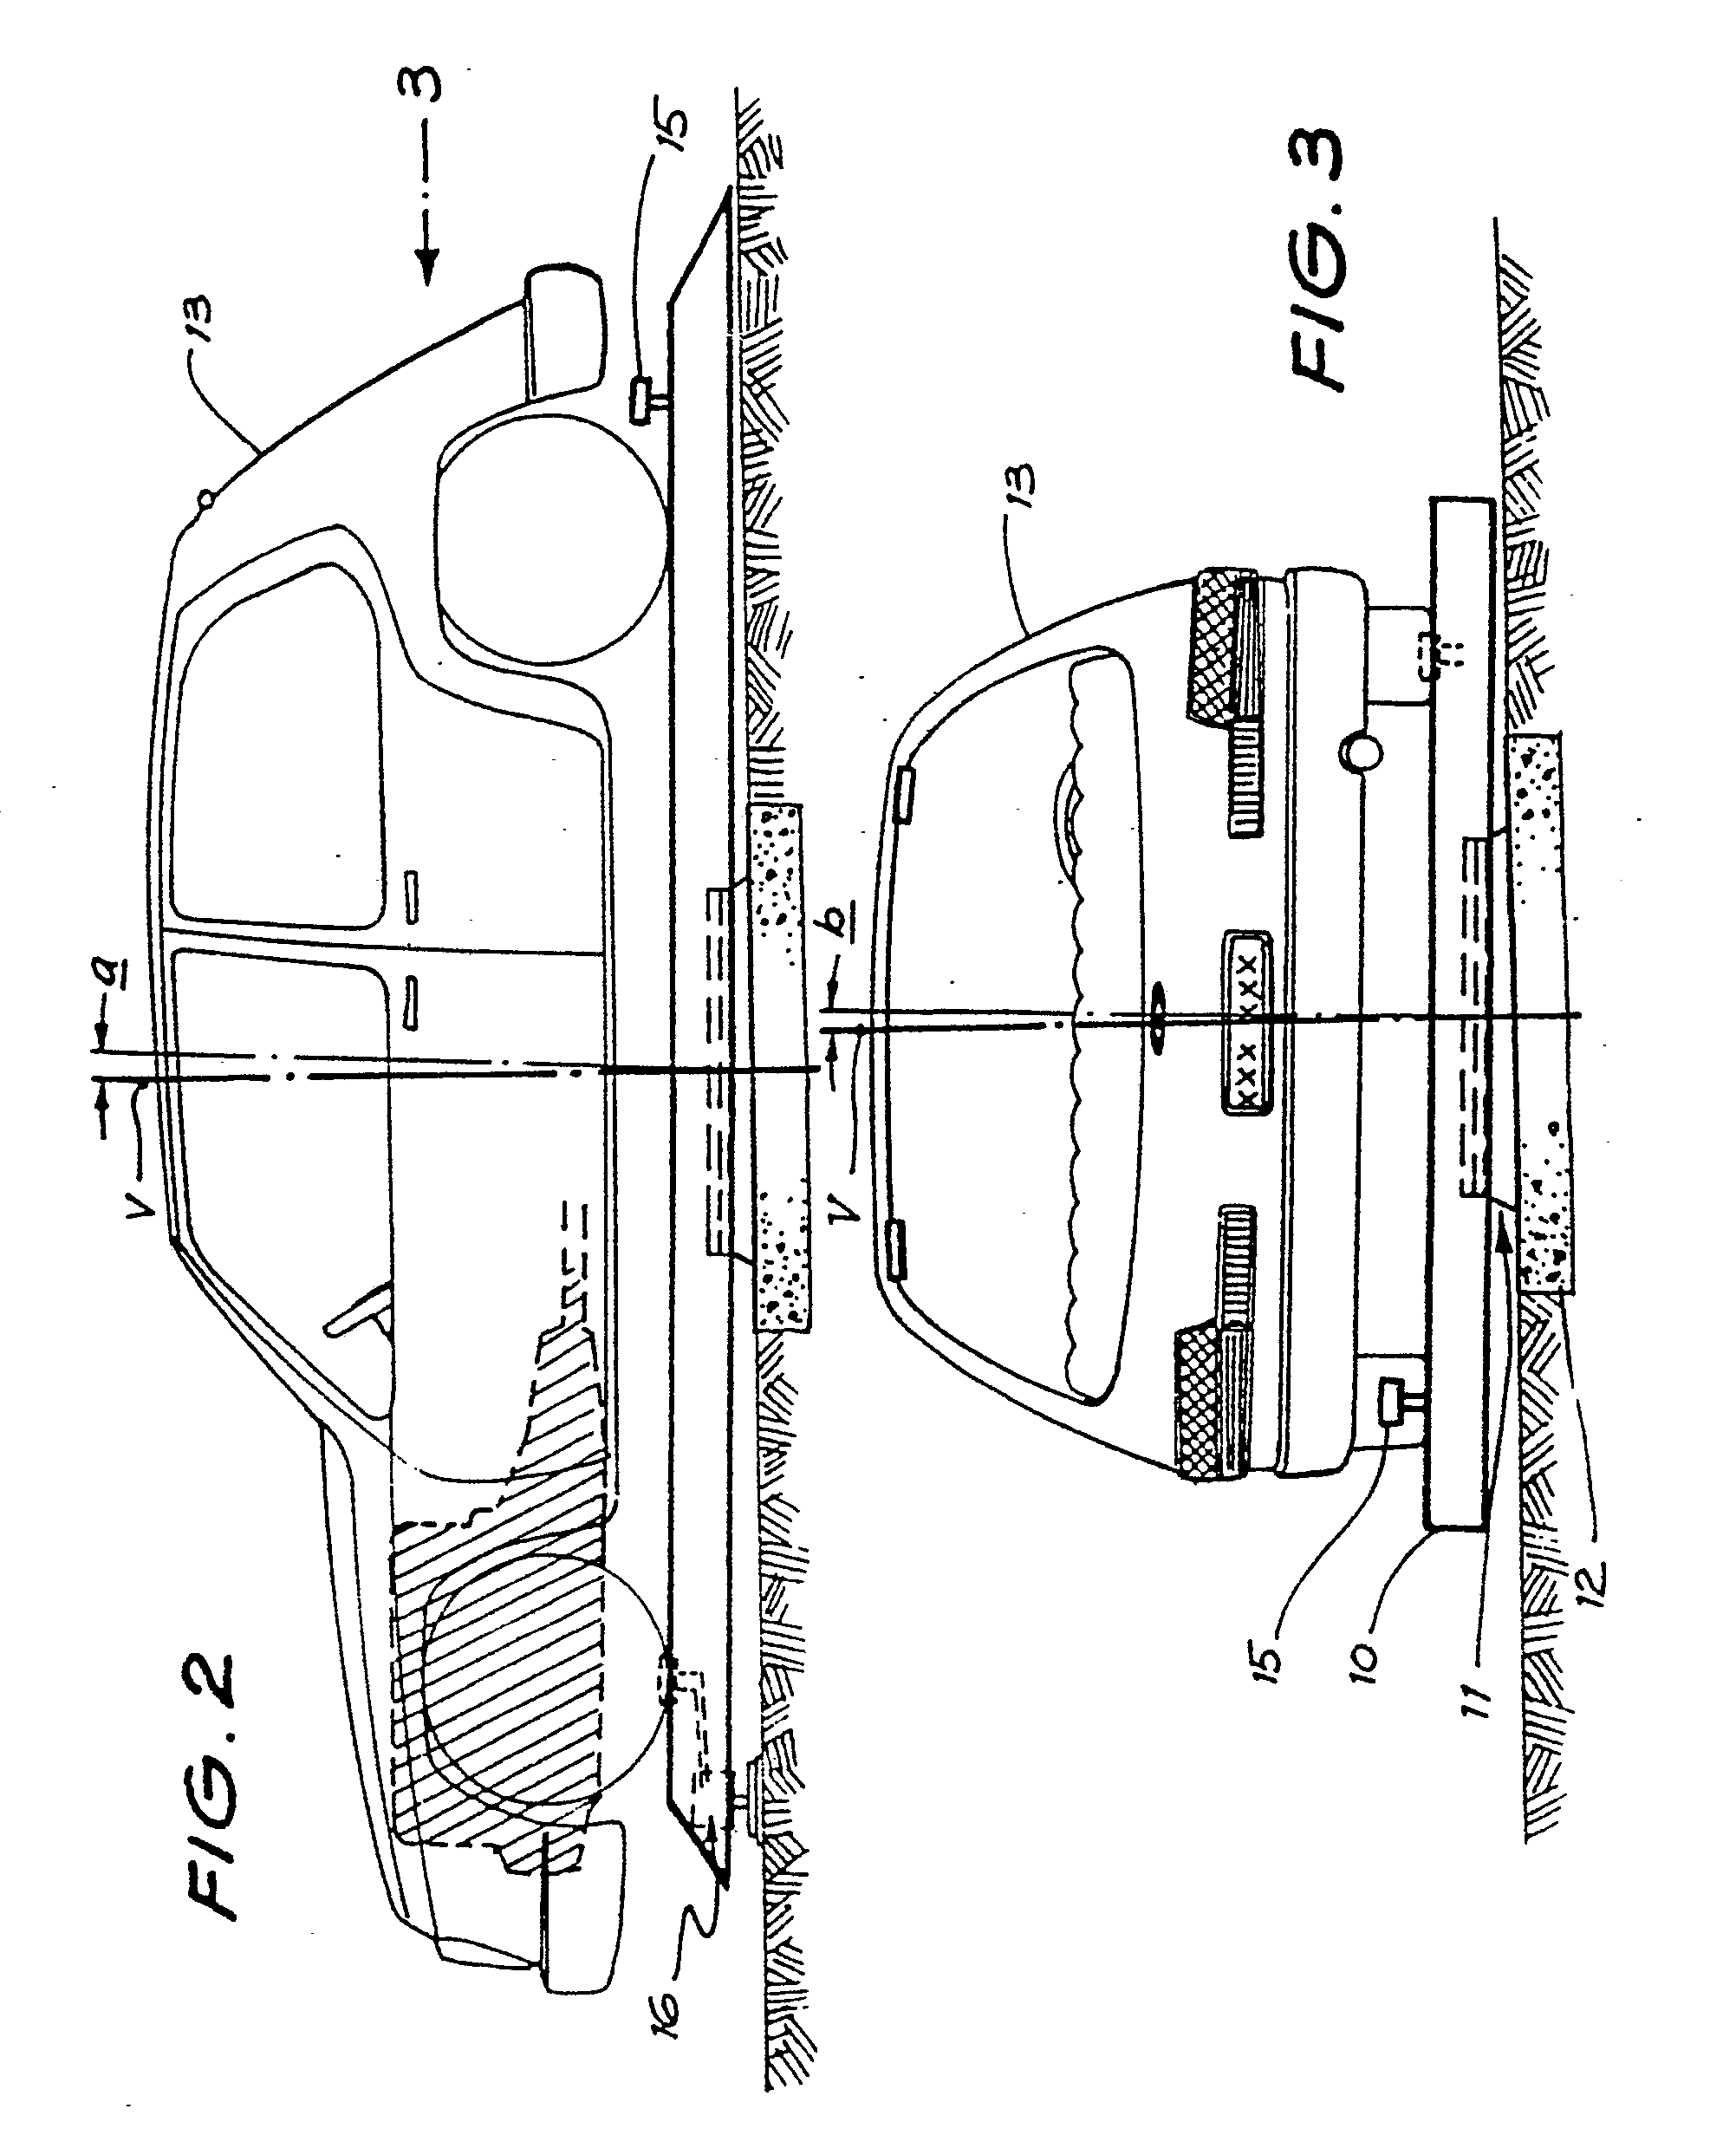 Patent ep0144473b1 motor vehicle turntable google patents for Car turntable plans